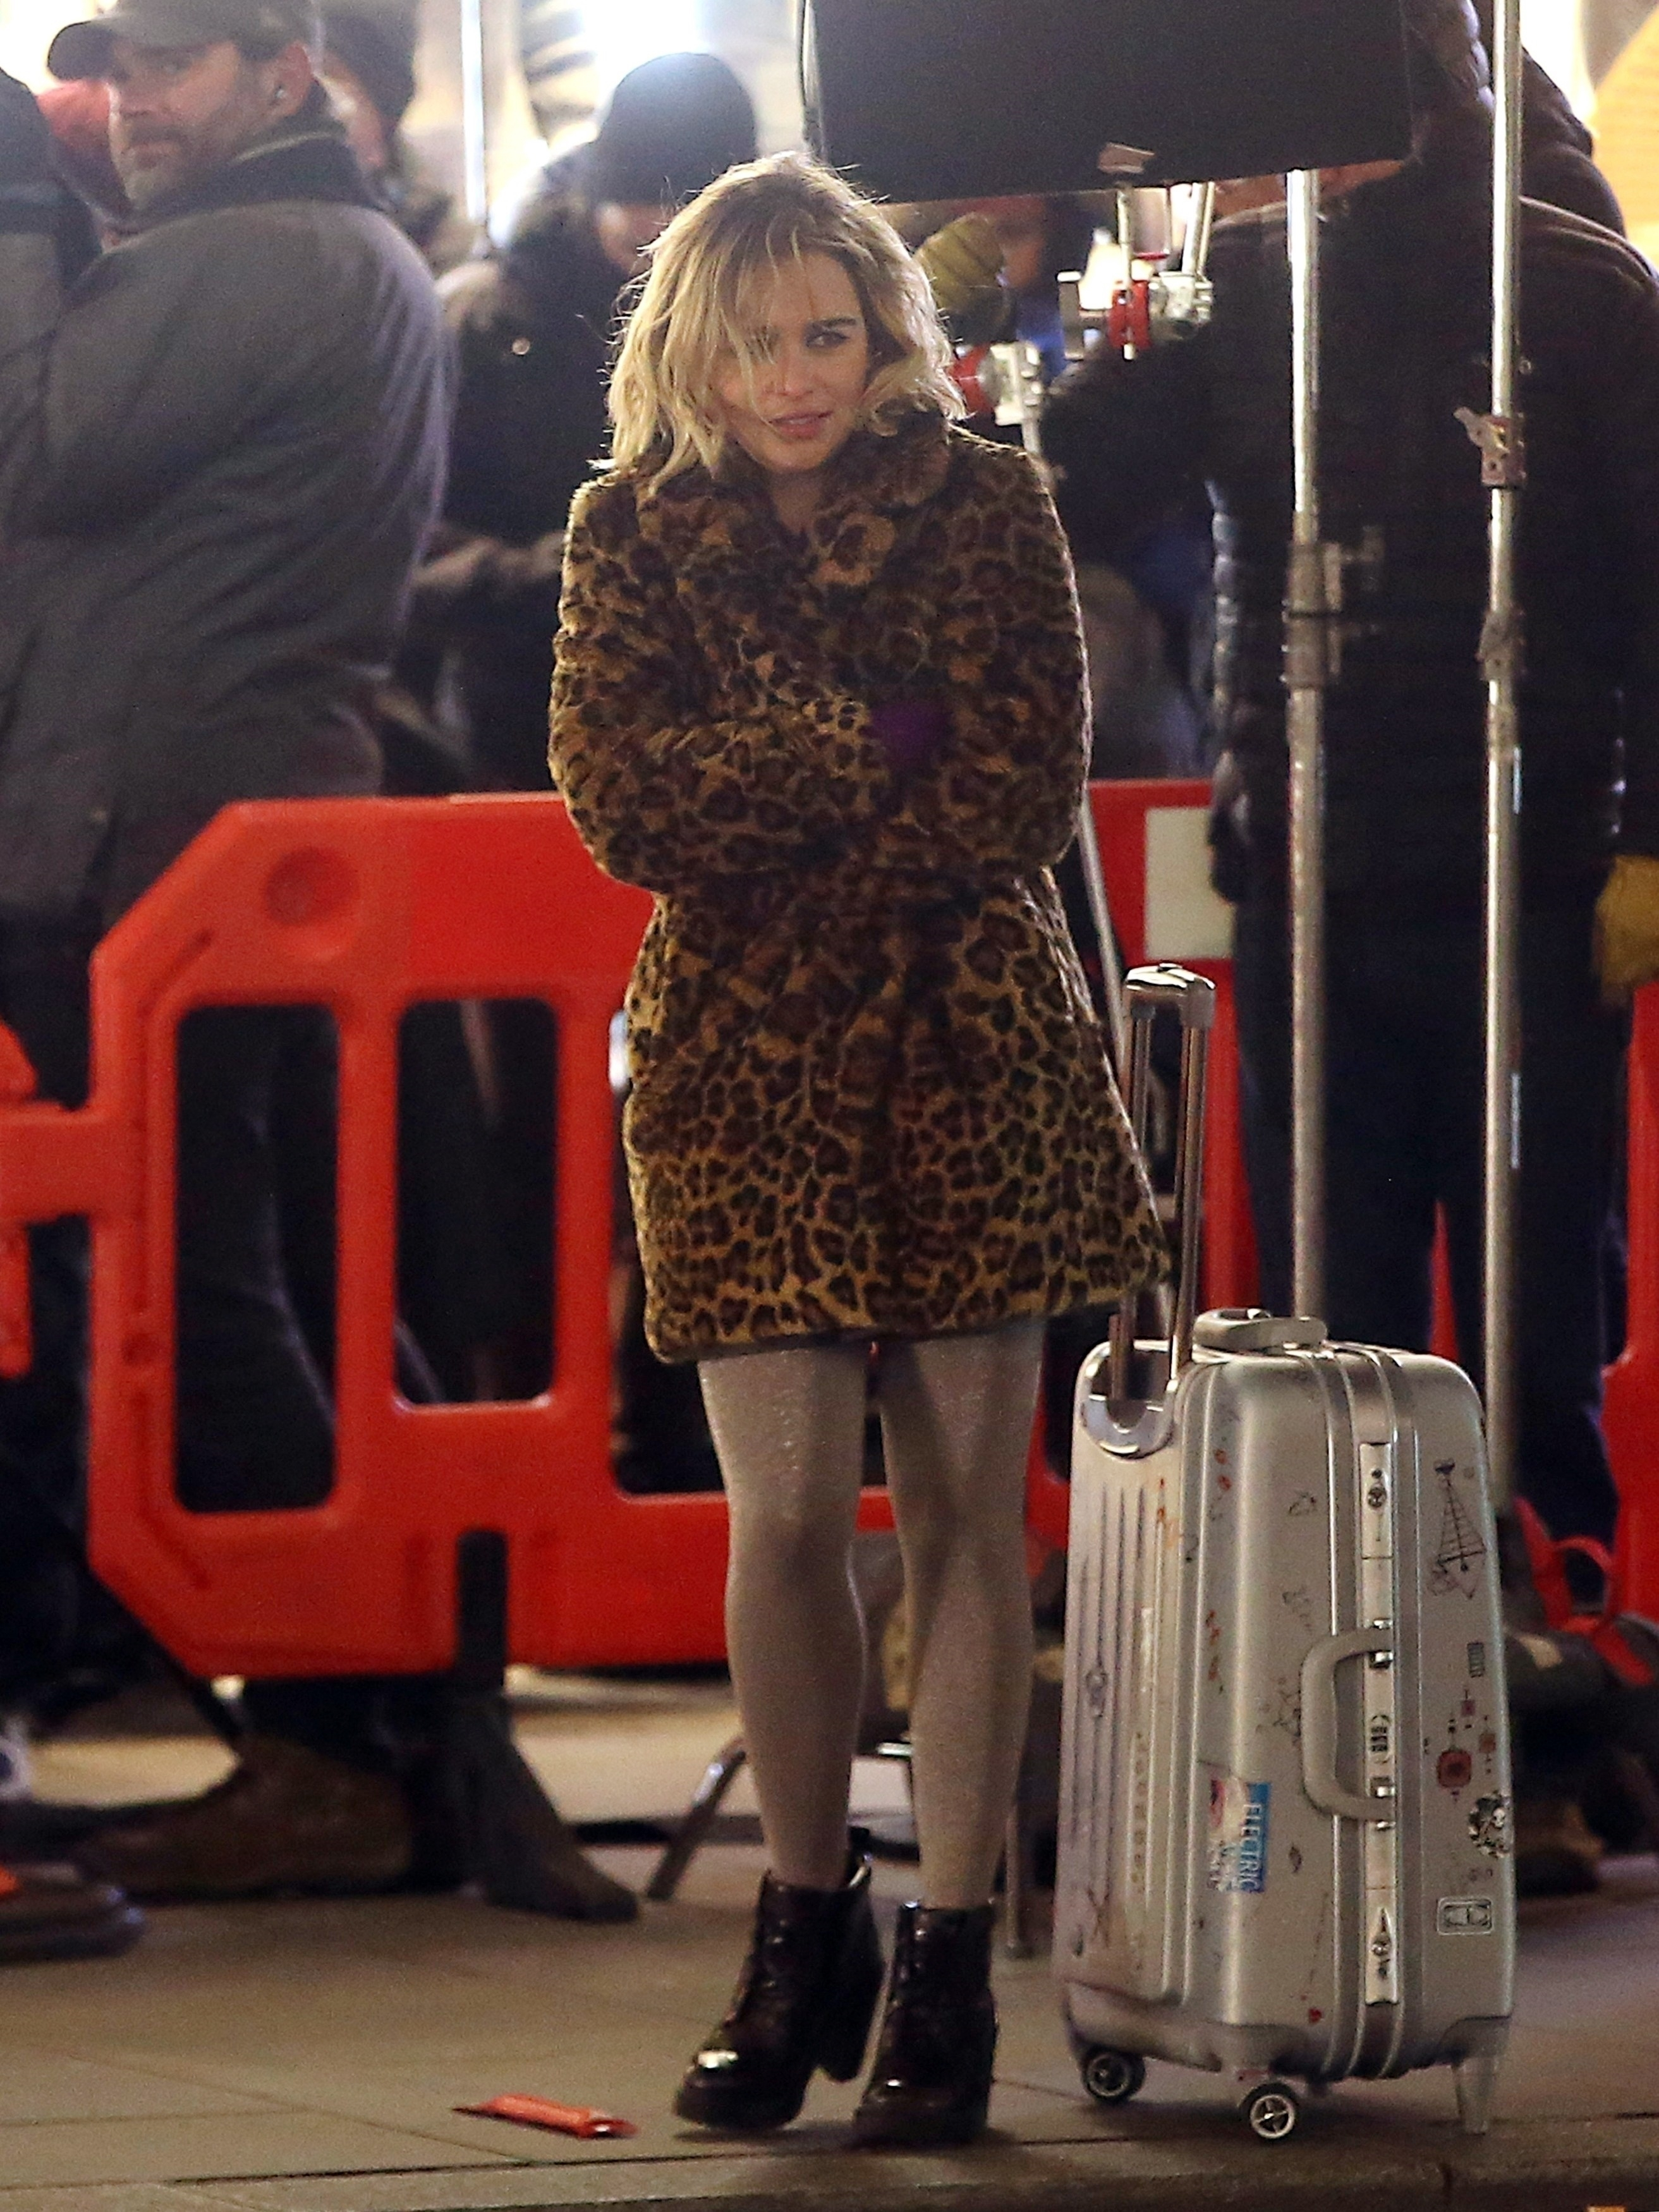 Emilia Clarke was seen trying to stay warm while filming her new movie 'Last Christmas' in London on Dec. 12, 2018.